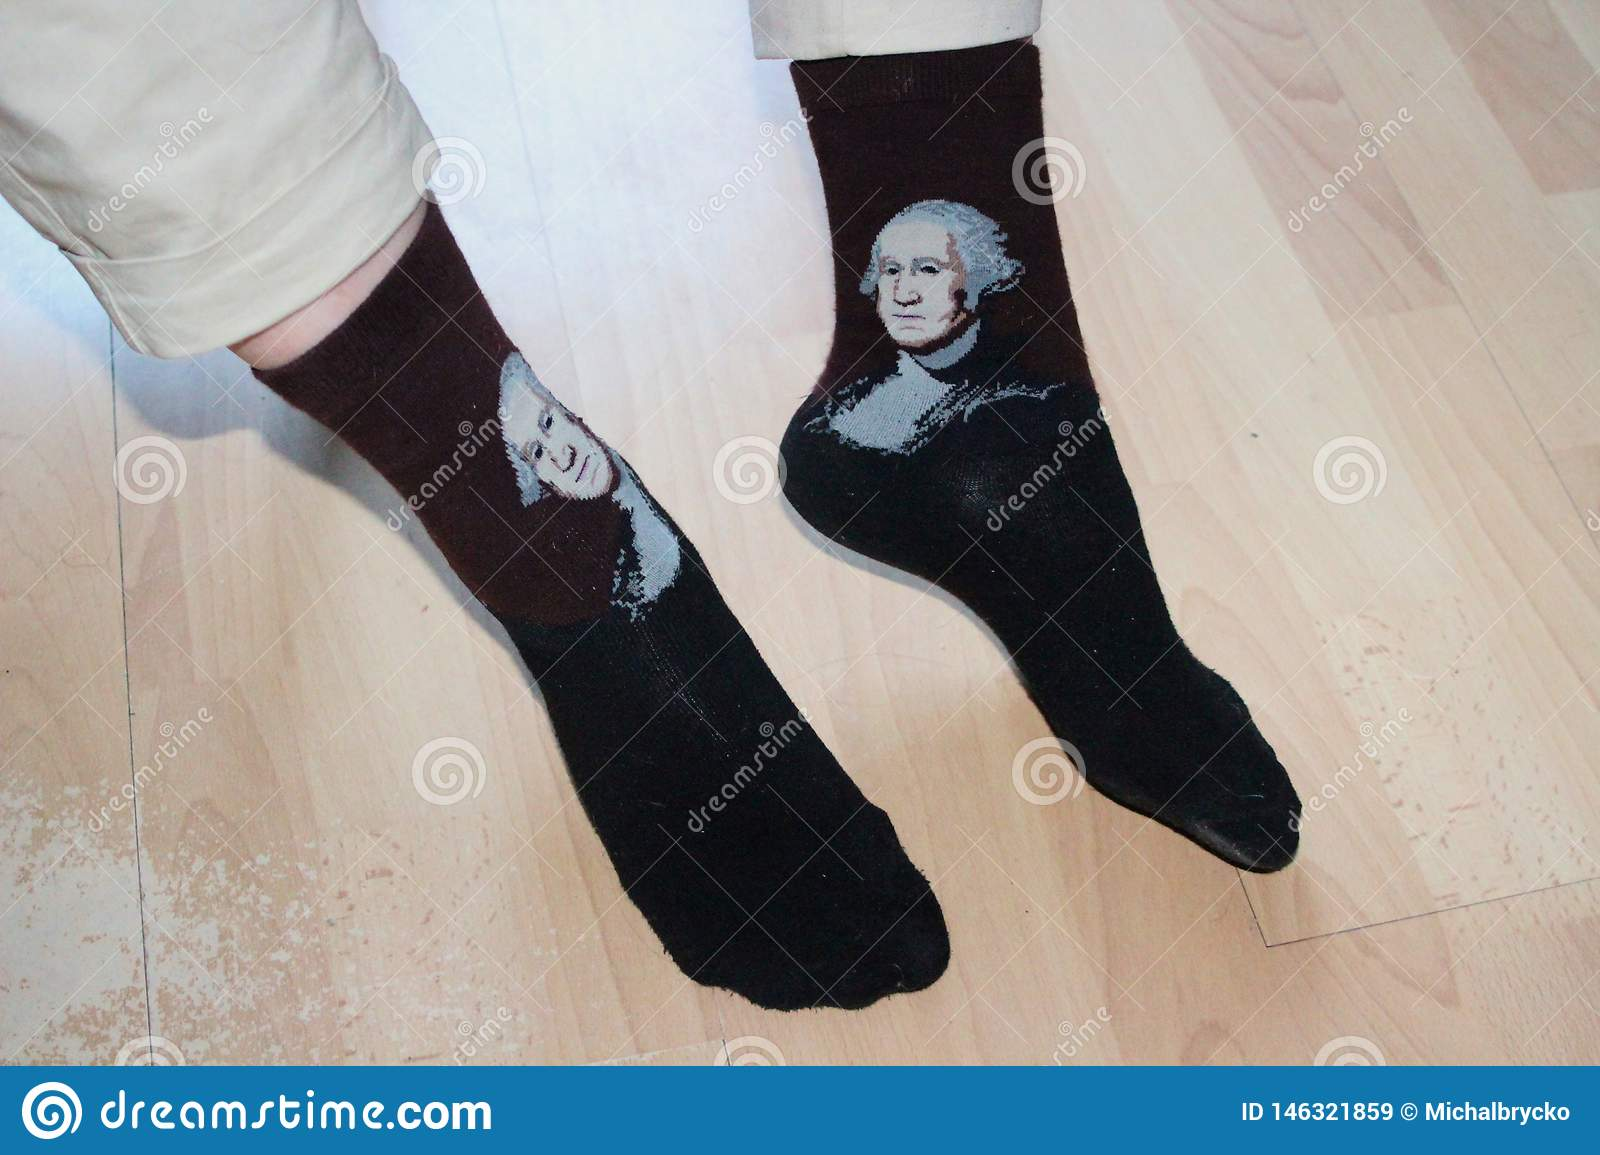 Socks with Mozart on the soft feet